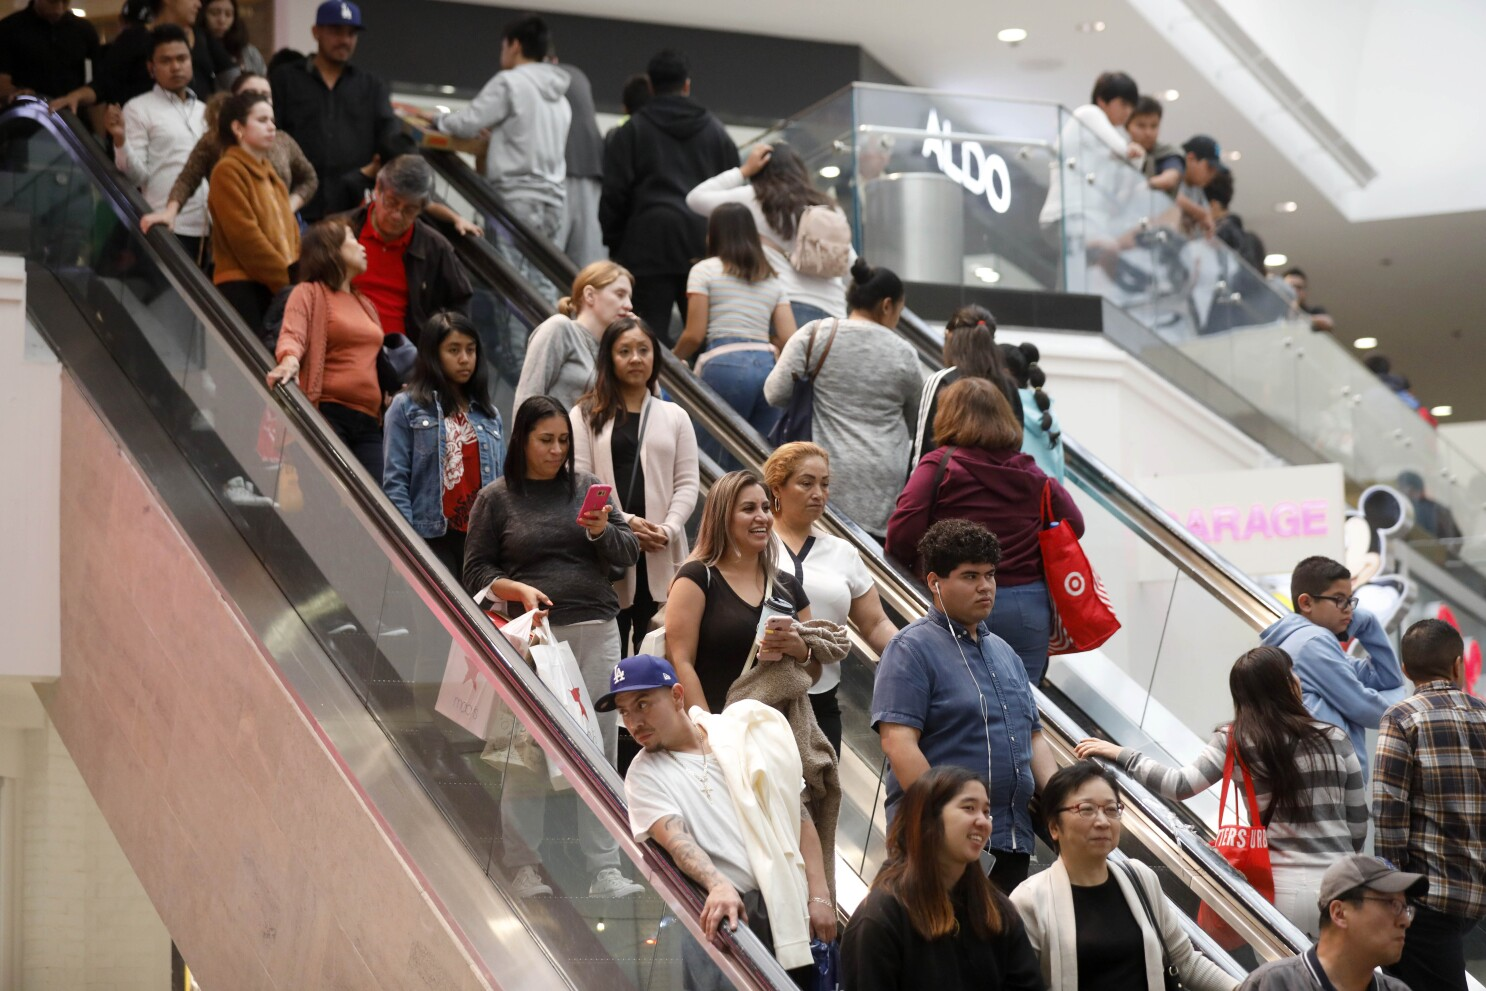 Retailers Plan For Black Friday With Covid 19 Precautions Los Angeles Times